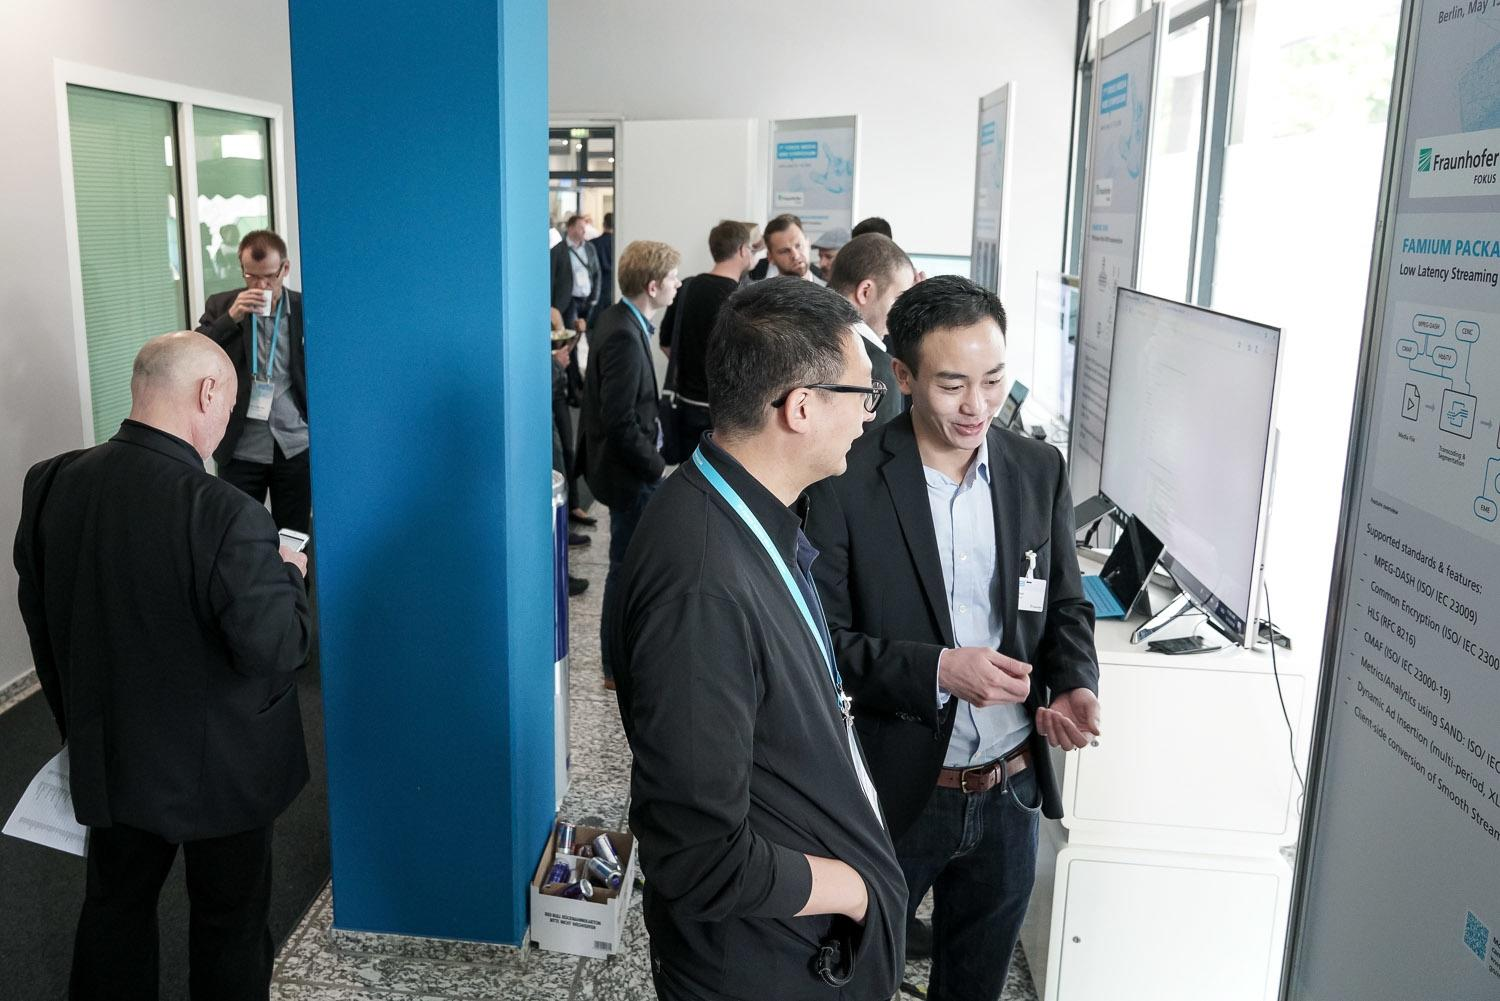 Fraunhofer FOKUS FAME MWS Media Web Symposium 2018 Demos